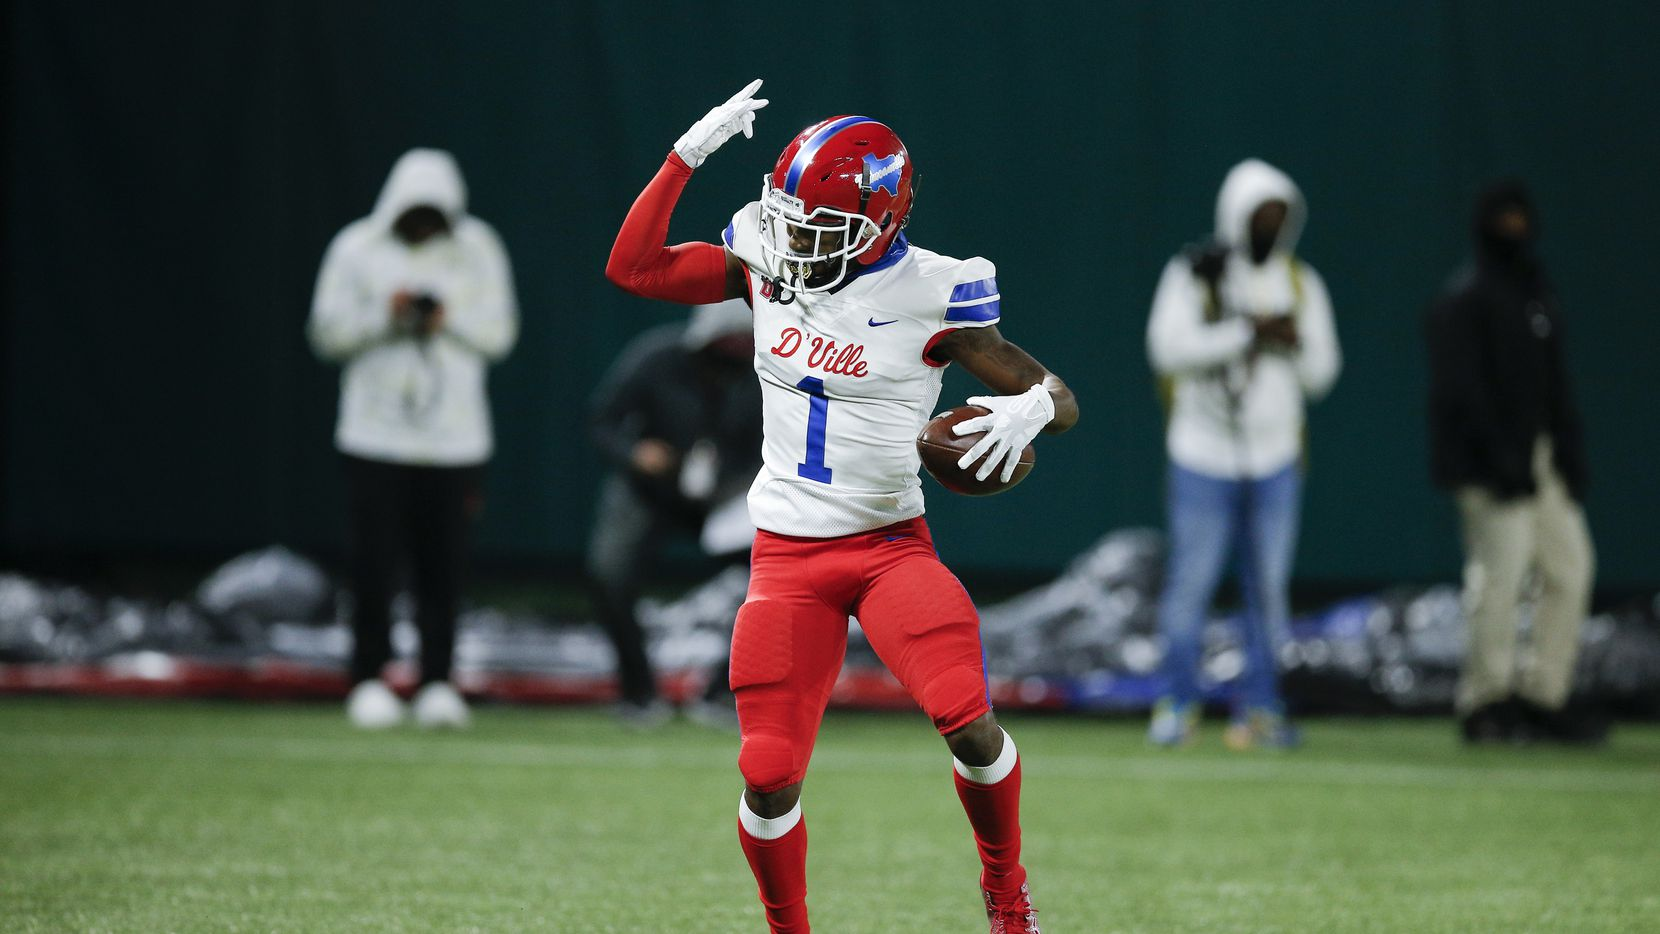 Duncanville senior running back Chris Hicks celebrates a touchdown during the first half of a Class 6A Division I Region II final high school football game against DeSoto, Saturday, January 2, 2021.